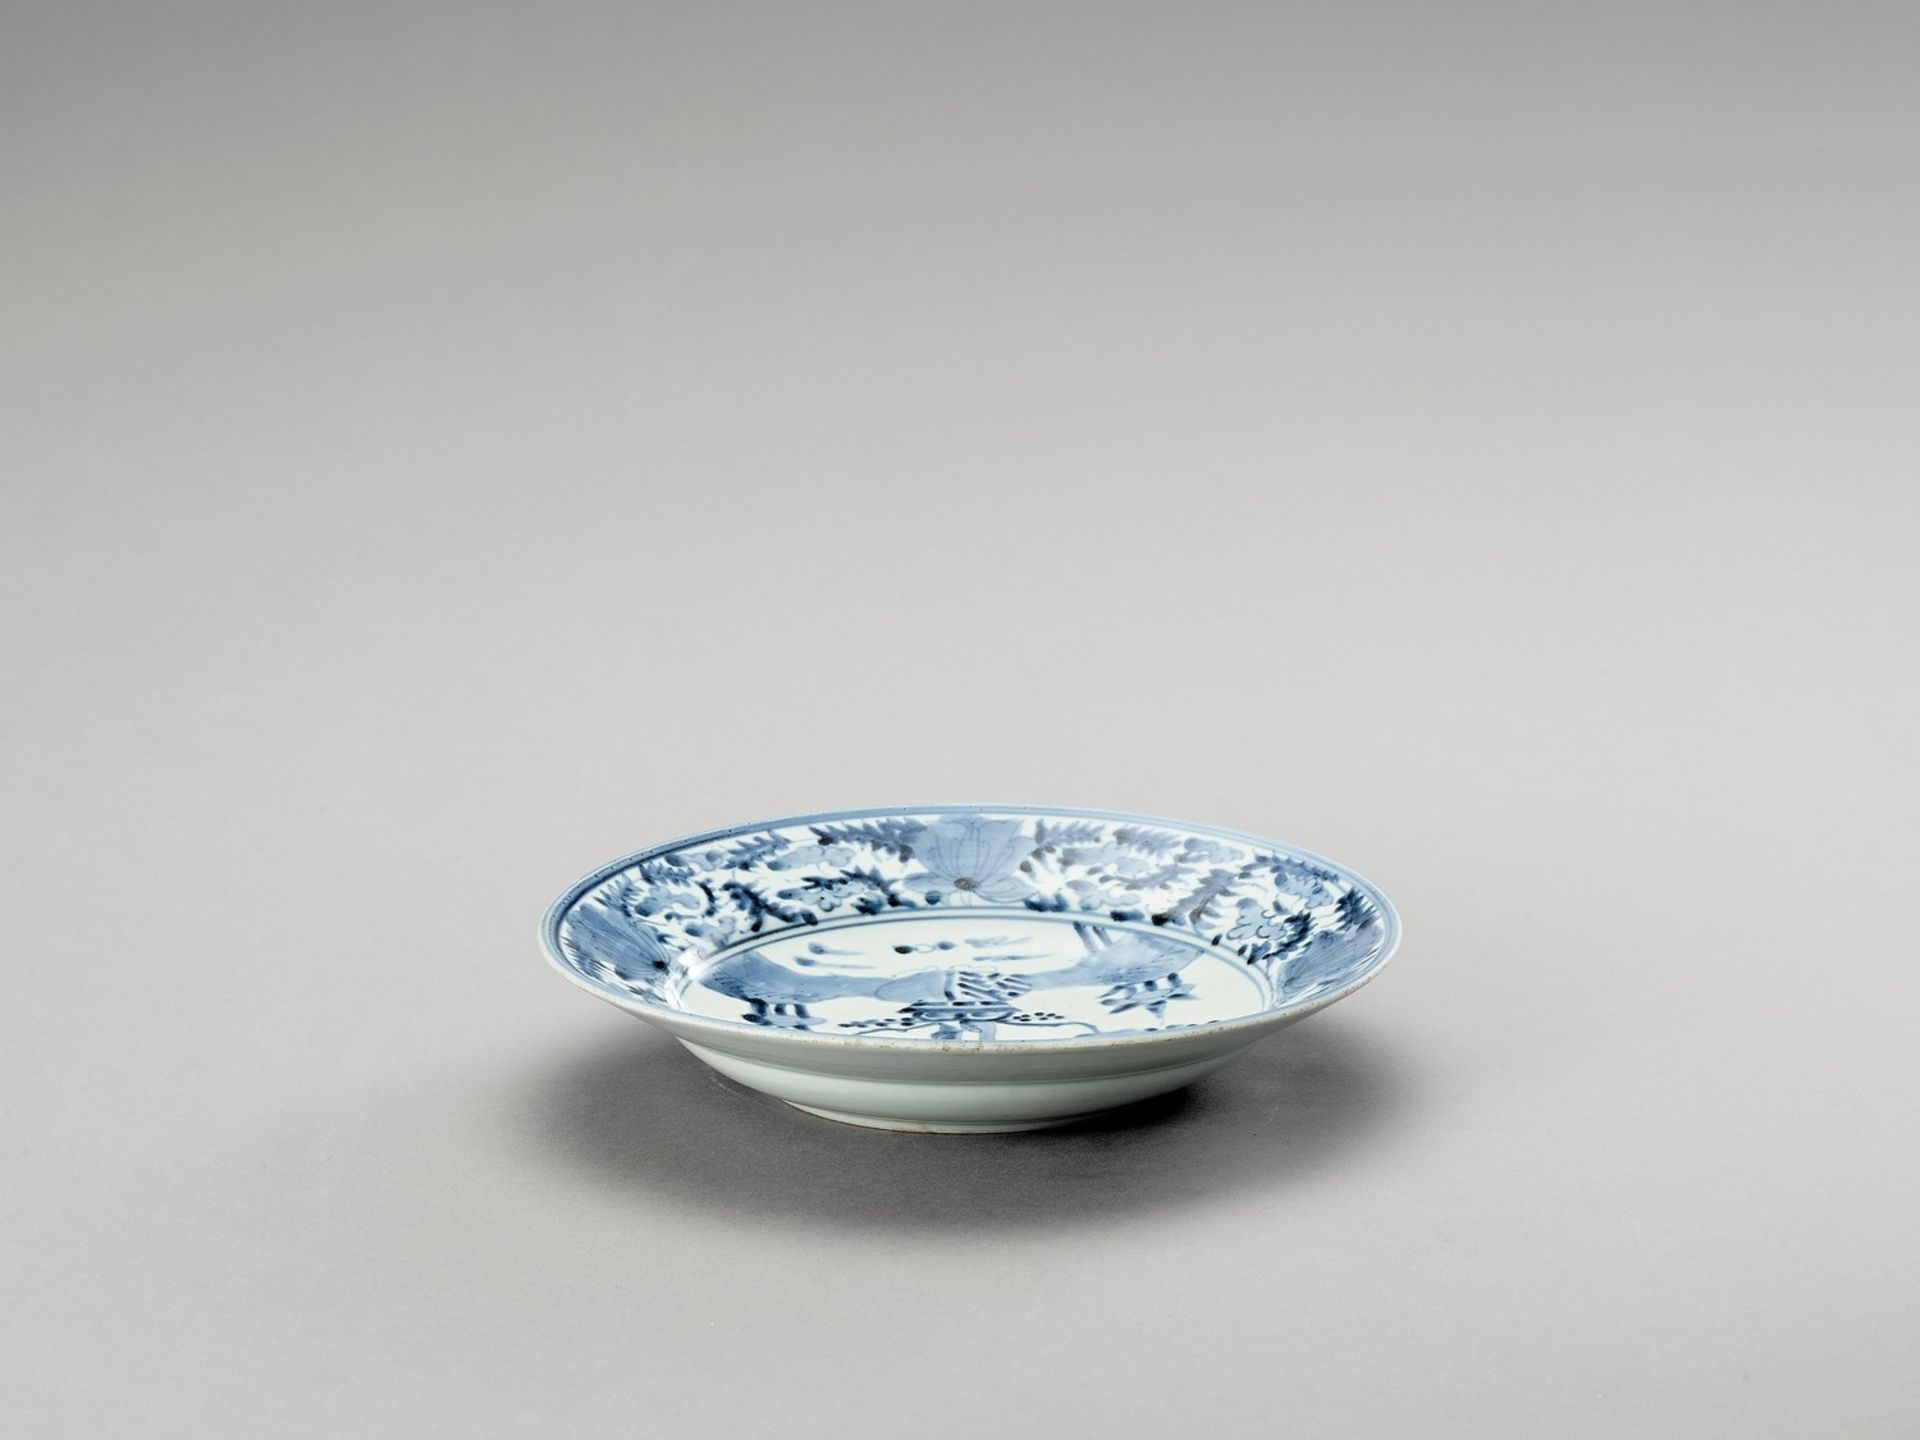 A 'KRAAK' STYLE BLUE AND WHITE PORCELAIN DISH - Image 4 of 4